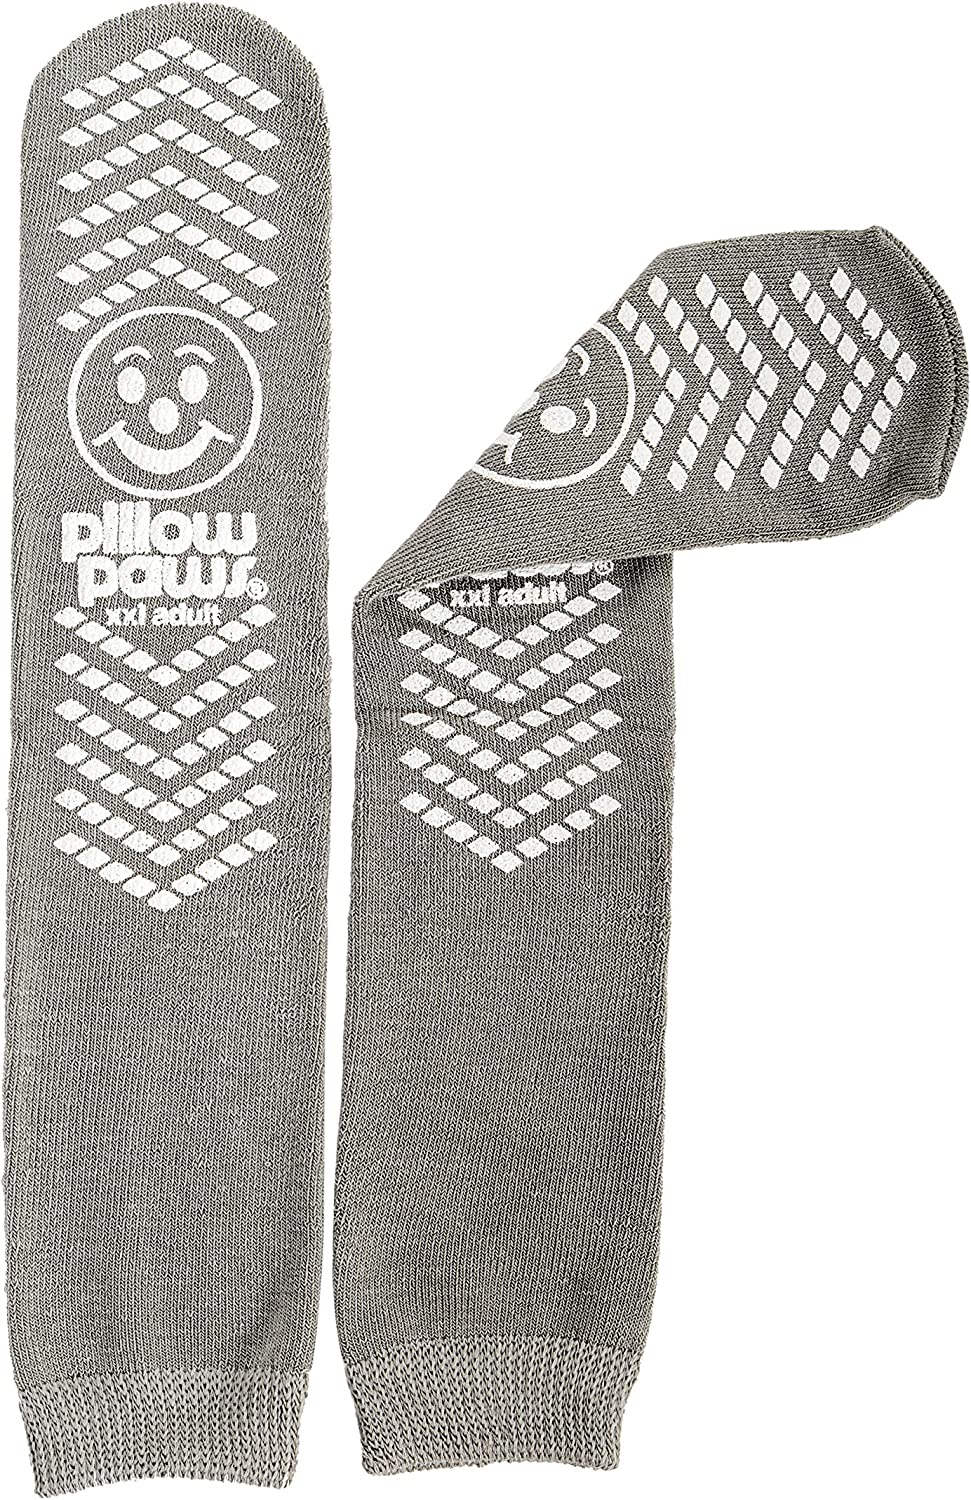 XXL Gray Double Tread Slip Stop Socks from Pillow Paws (Terrycloth) (2 Pairs)